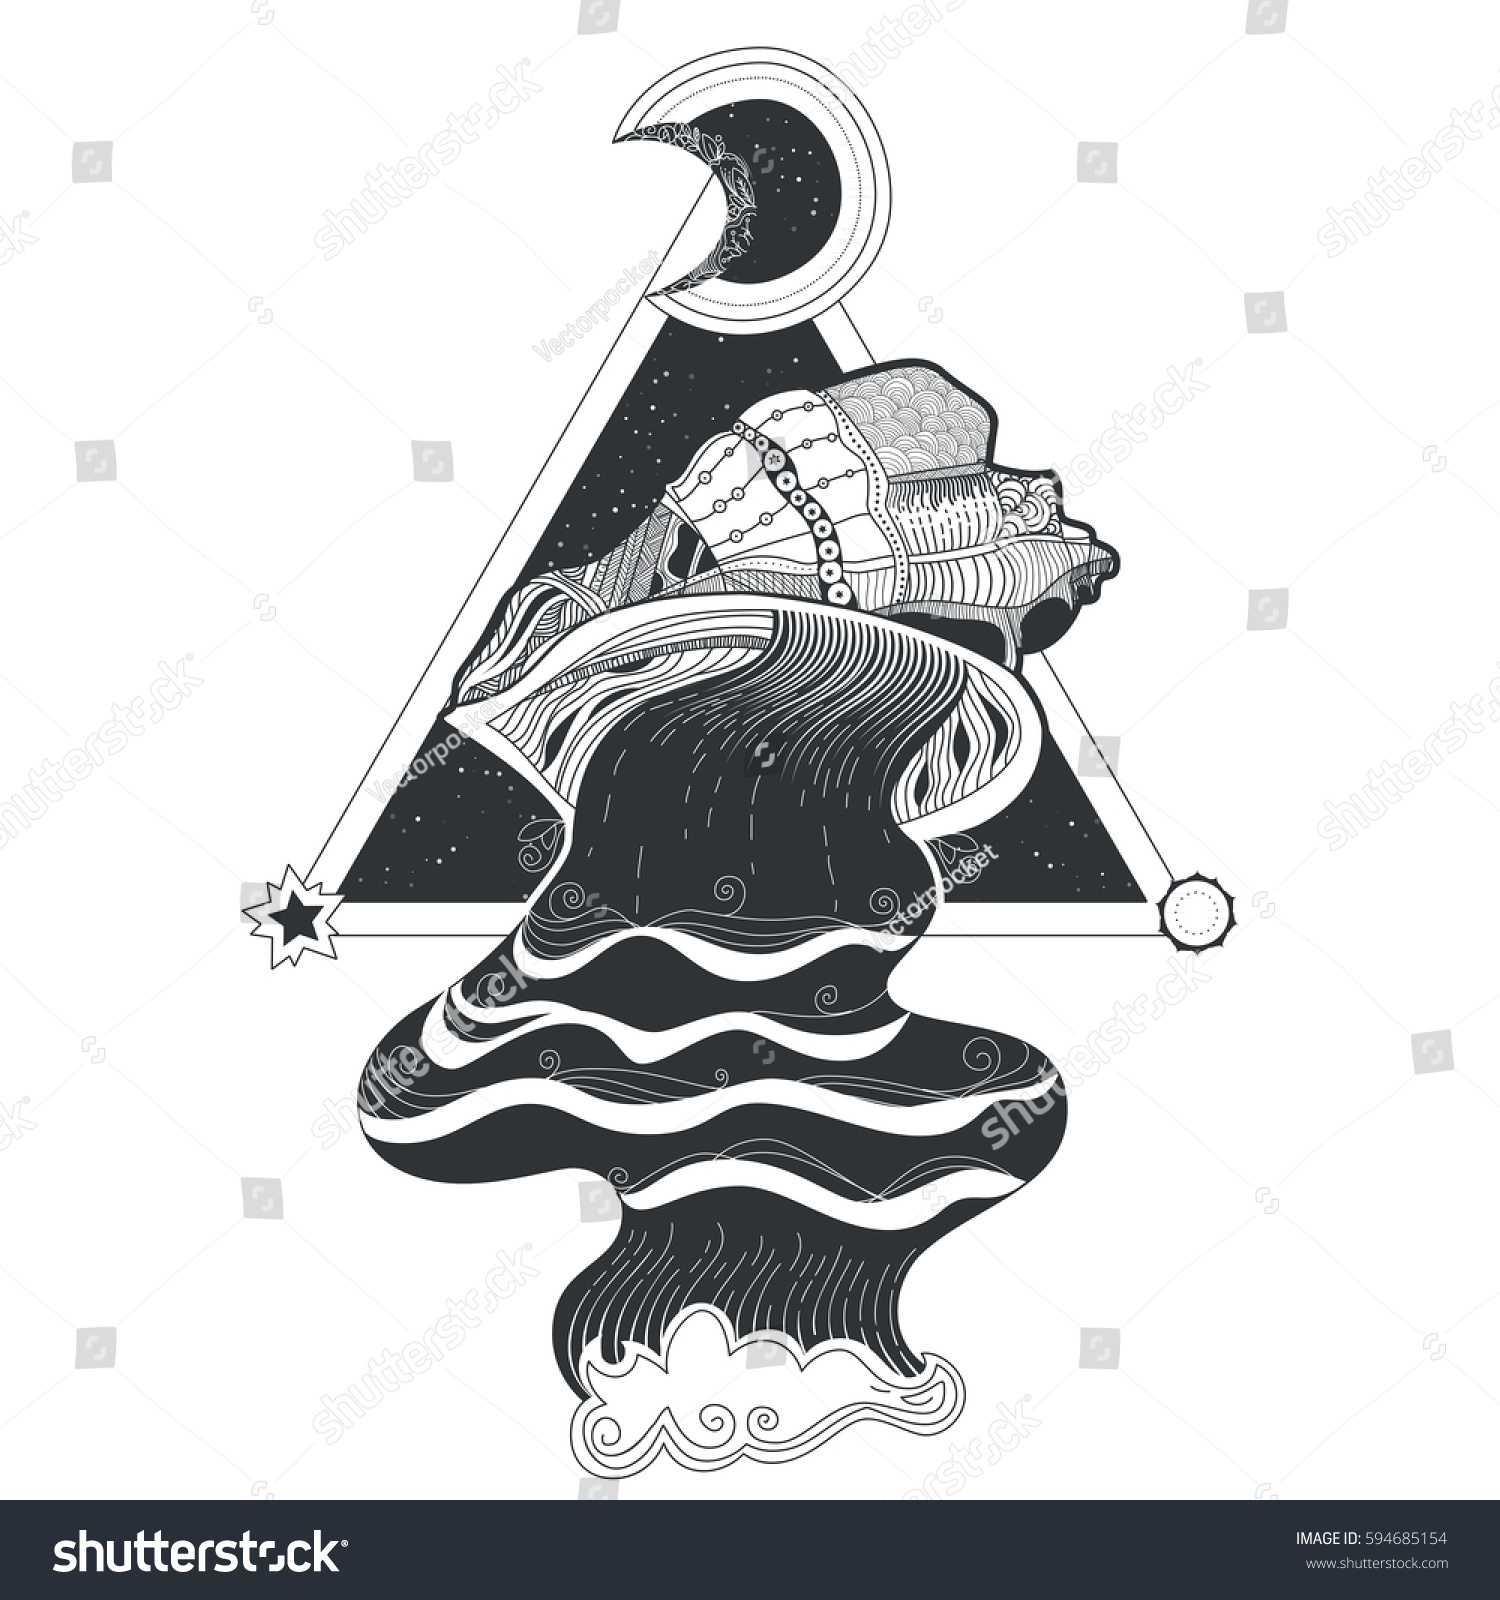 Vector tribal pattern tattoo flow water stock vector for Ink flow tattoo